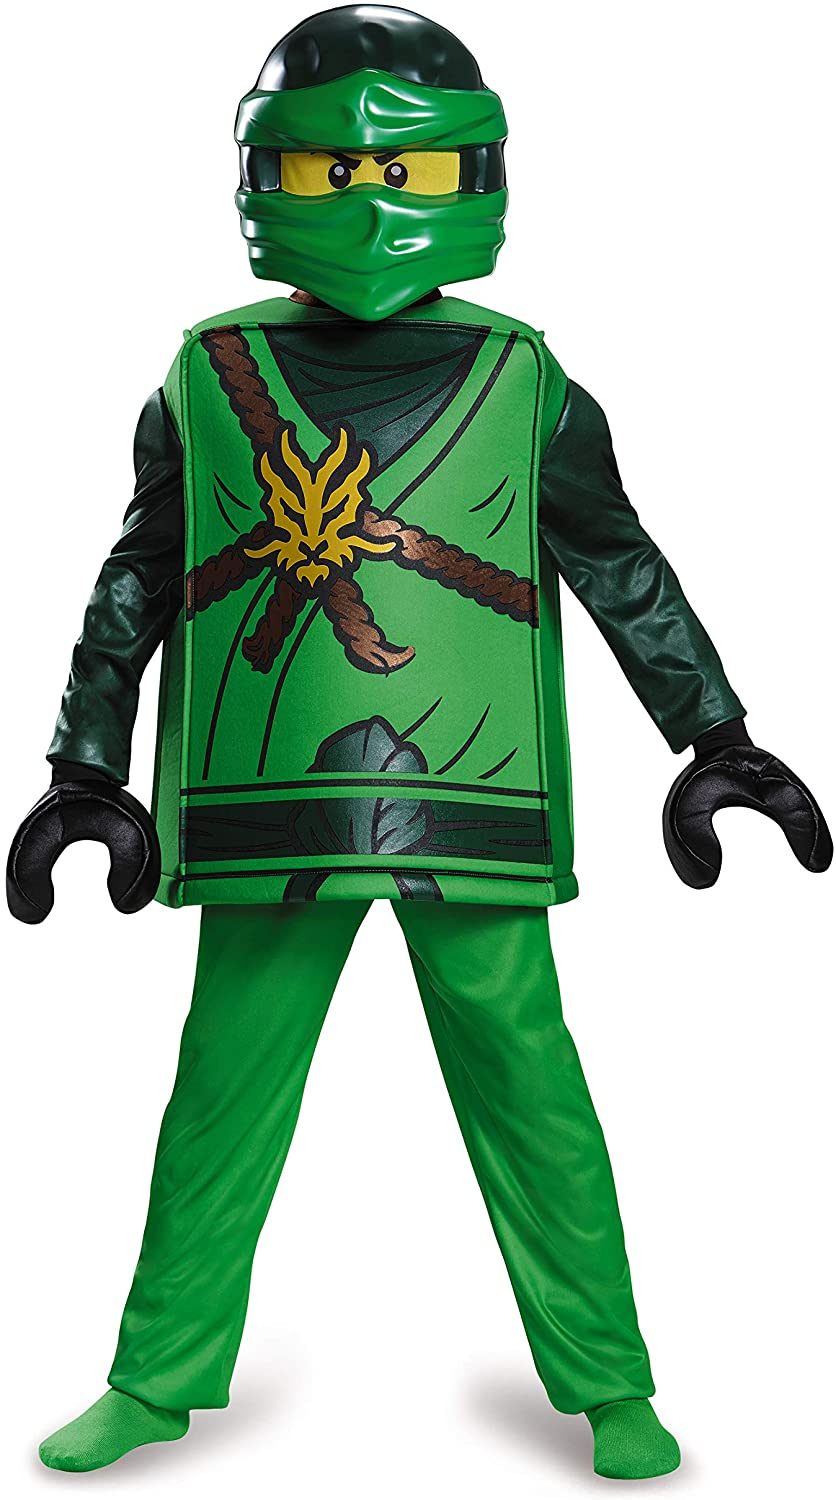 Disguise Lloyd Deluxe Ninjago Lego Costume, Large/10-12